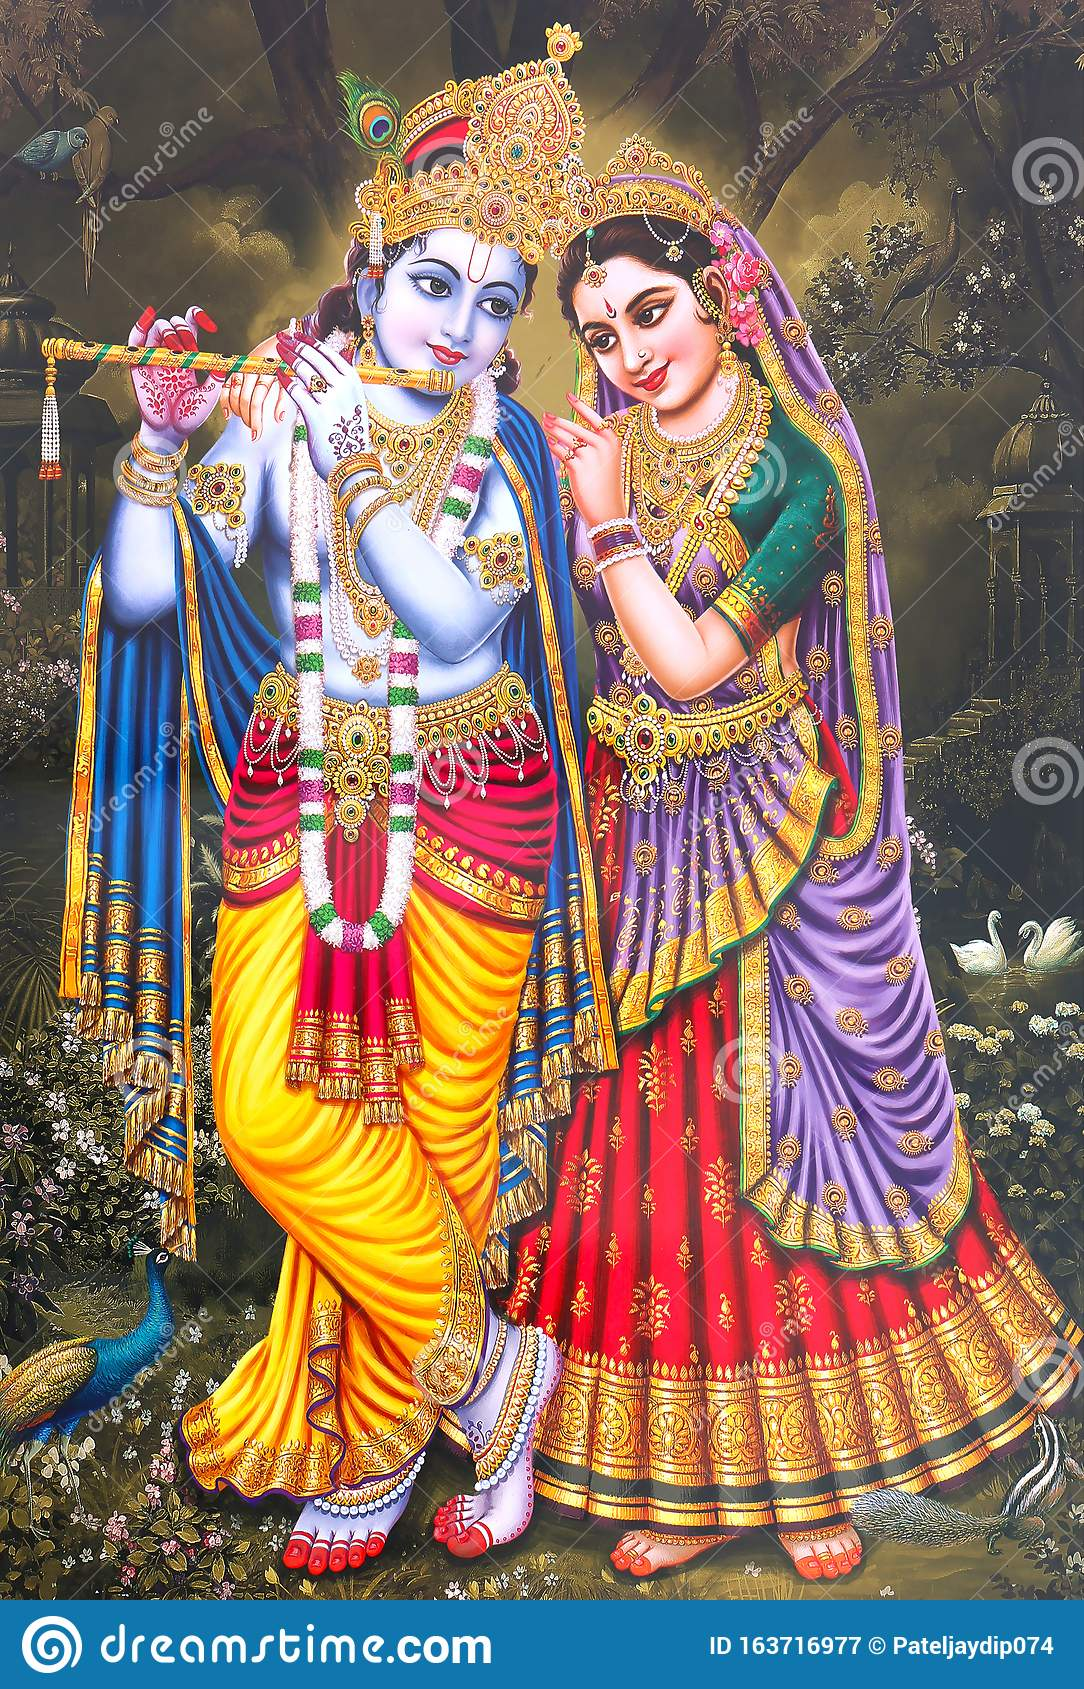 1 794 Radha Krishna Photos Free Royalty Free Stock Photos From Dreamstime